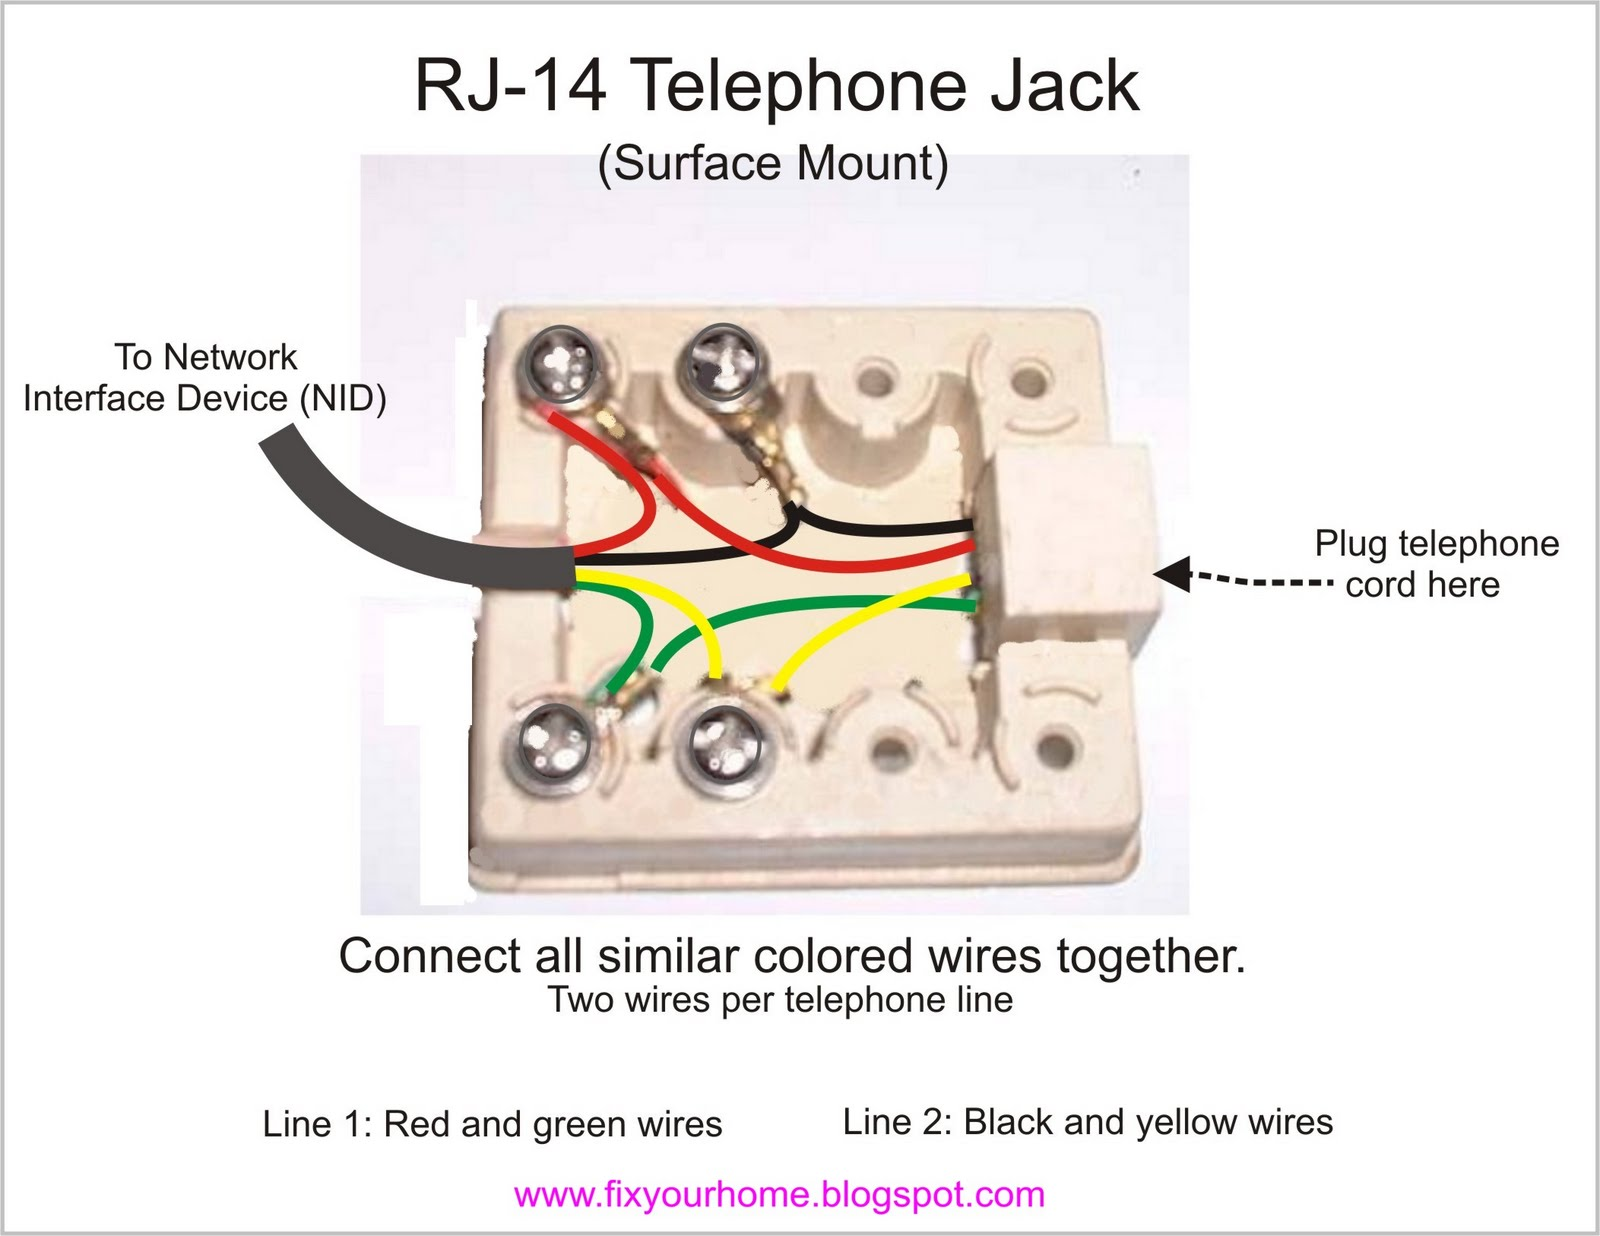 rj11 wall jack wiring diagram ignition switch and obd live data phone wires | get free image about